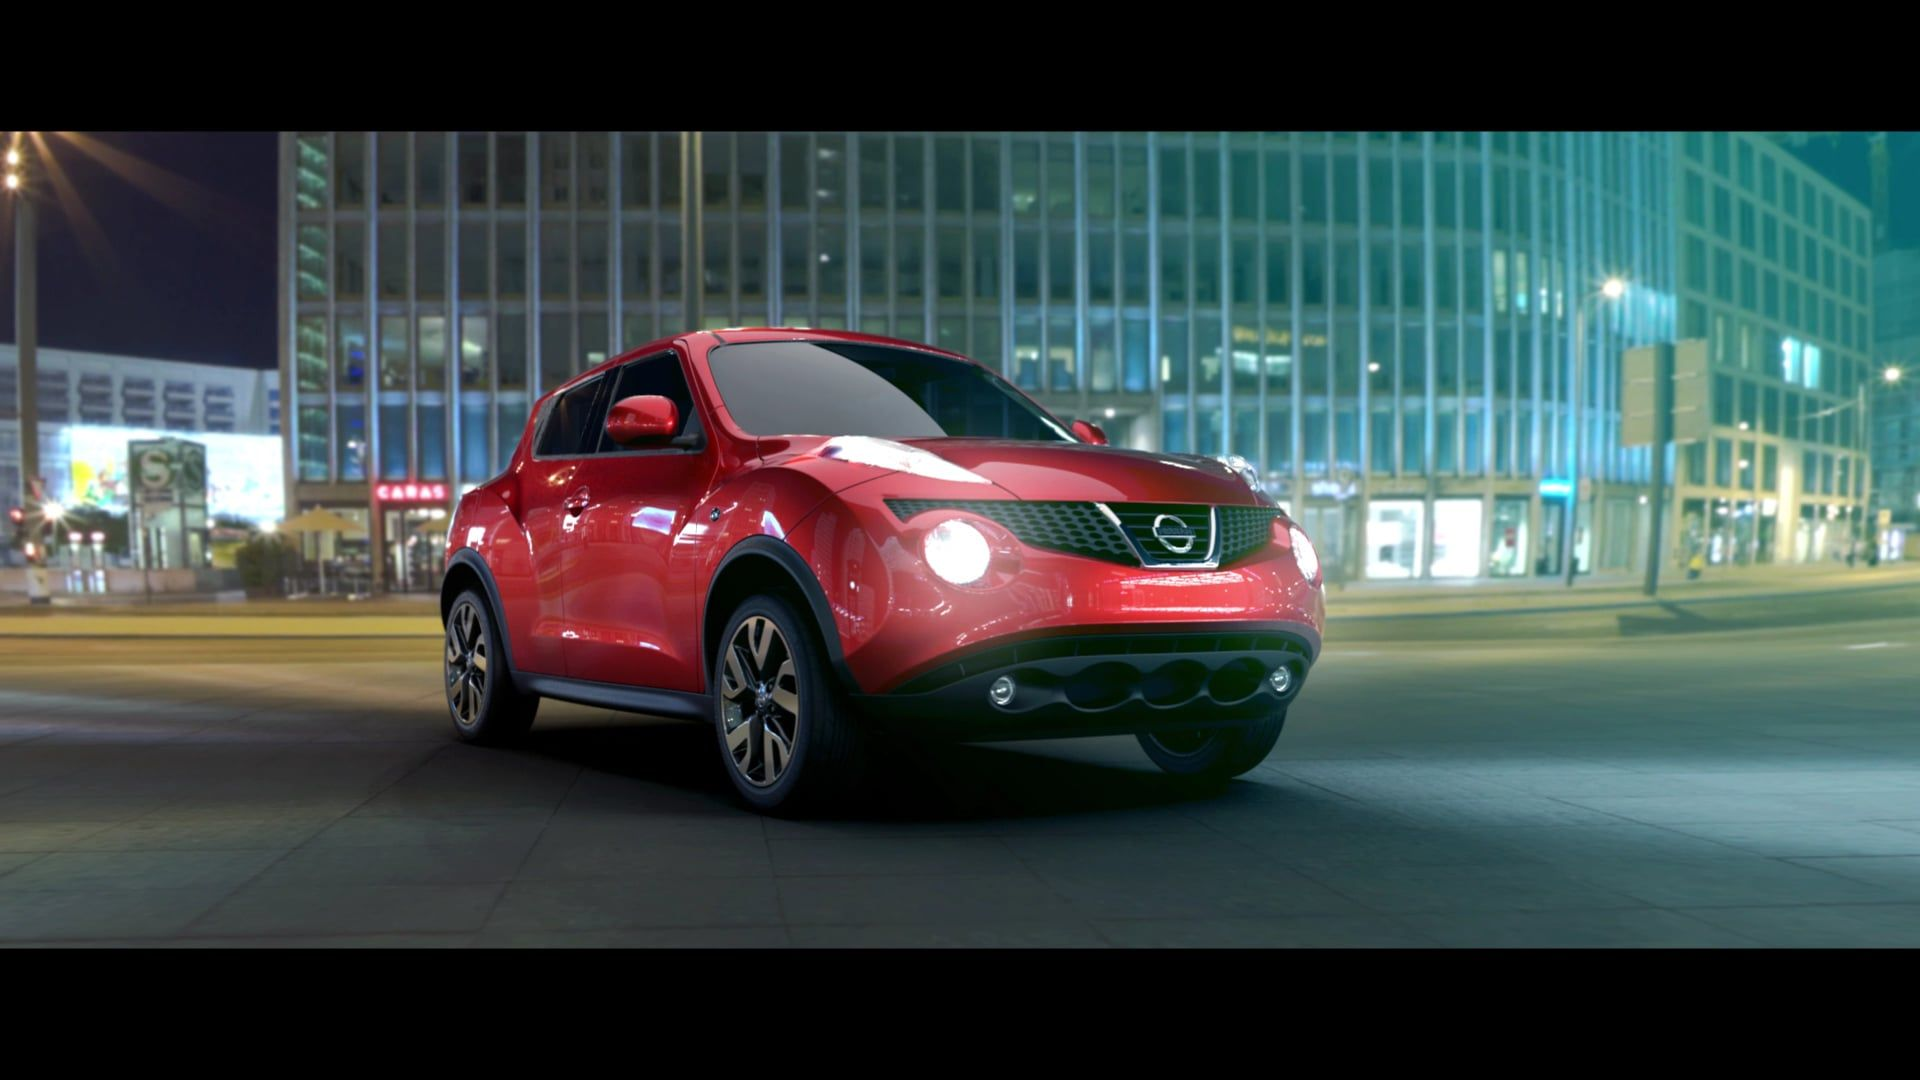 NISSAN JUKE in 2020 Nissan juke, Nissan, Car model